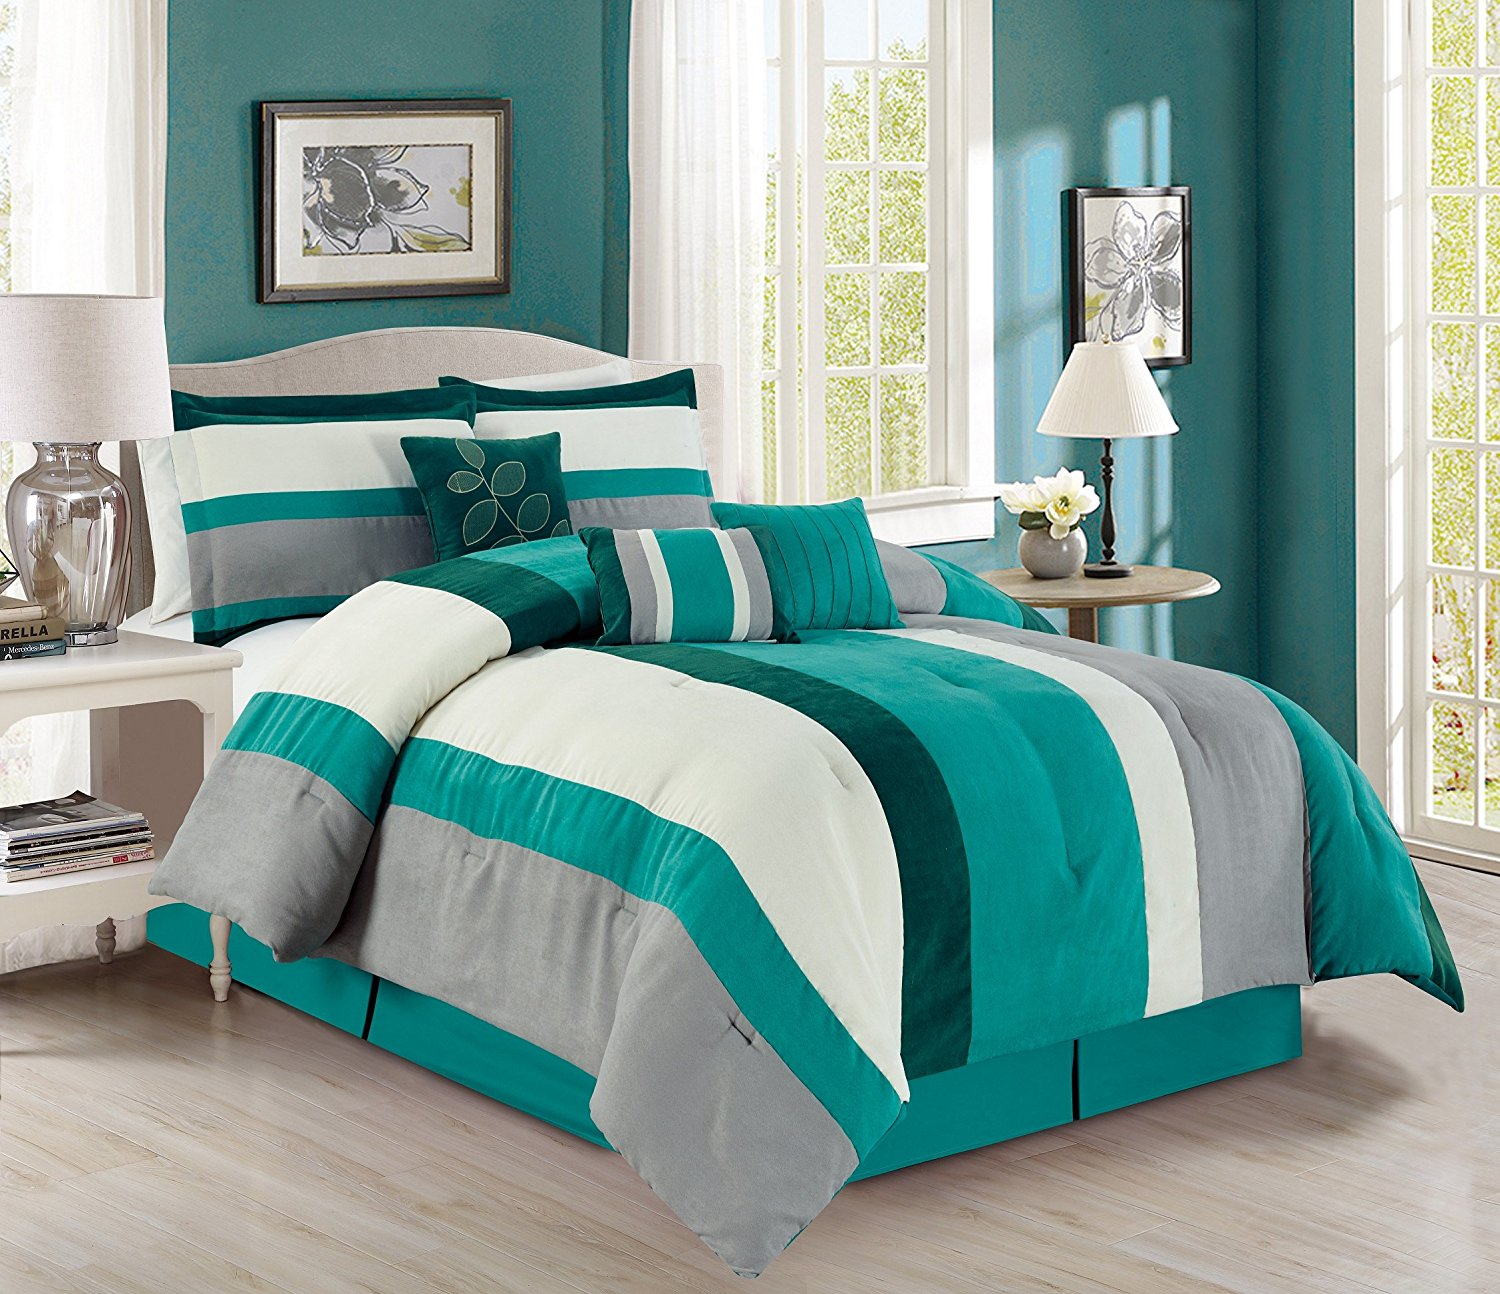 and size best for suede on in queen prime blanket comforter the clearance bag set image mainstays top bedding popular inspiration files tiles